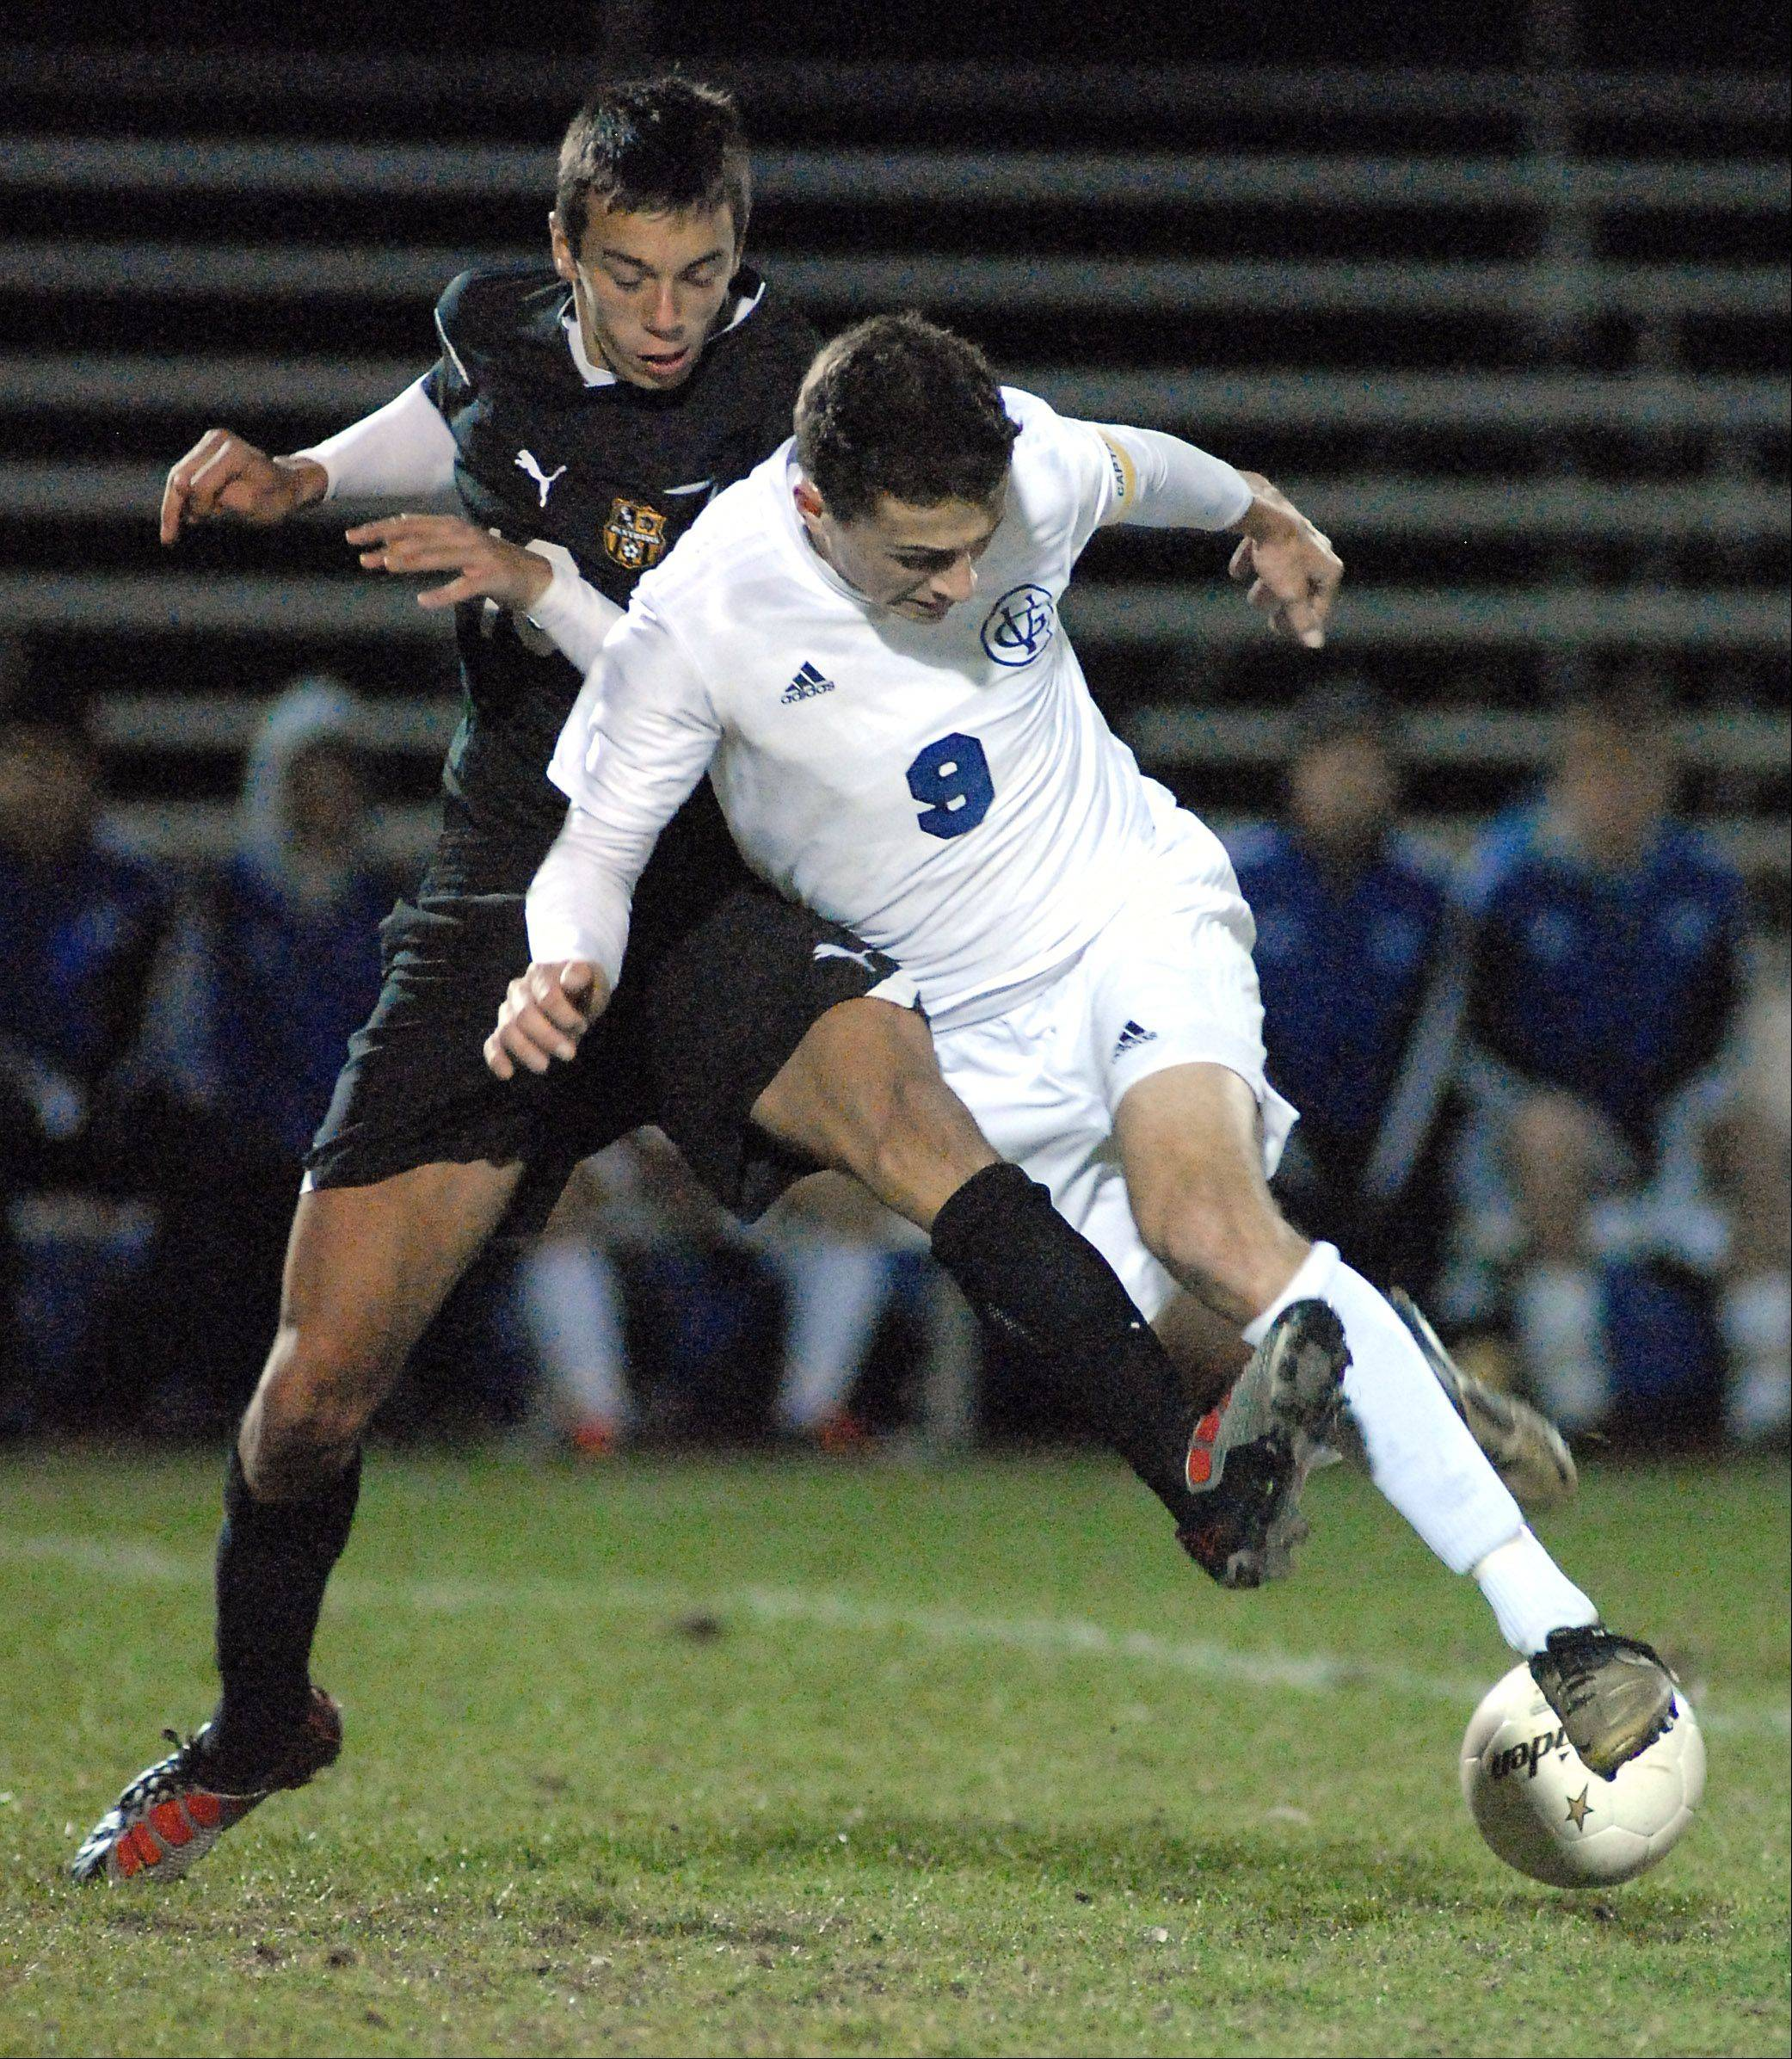 Geneva's Kevin Higgins goes down while battling for the ball against Glenbard North's Kevin Noval during Tuesday's regional soccer game at Elk Grove High School.